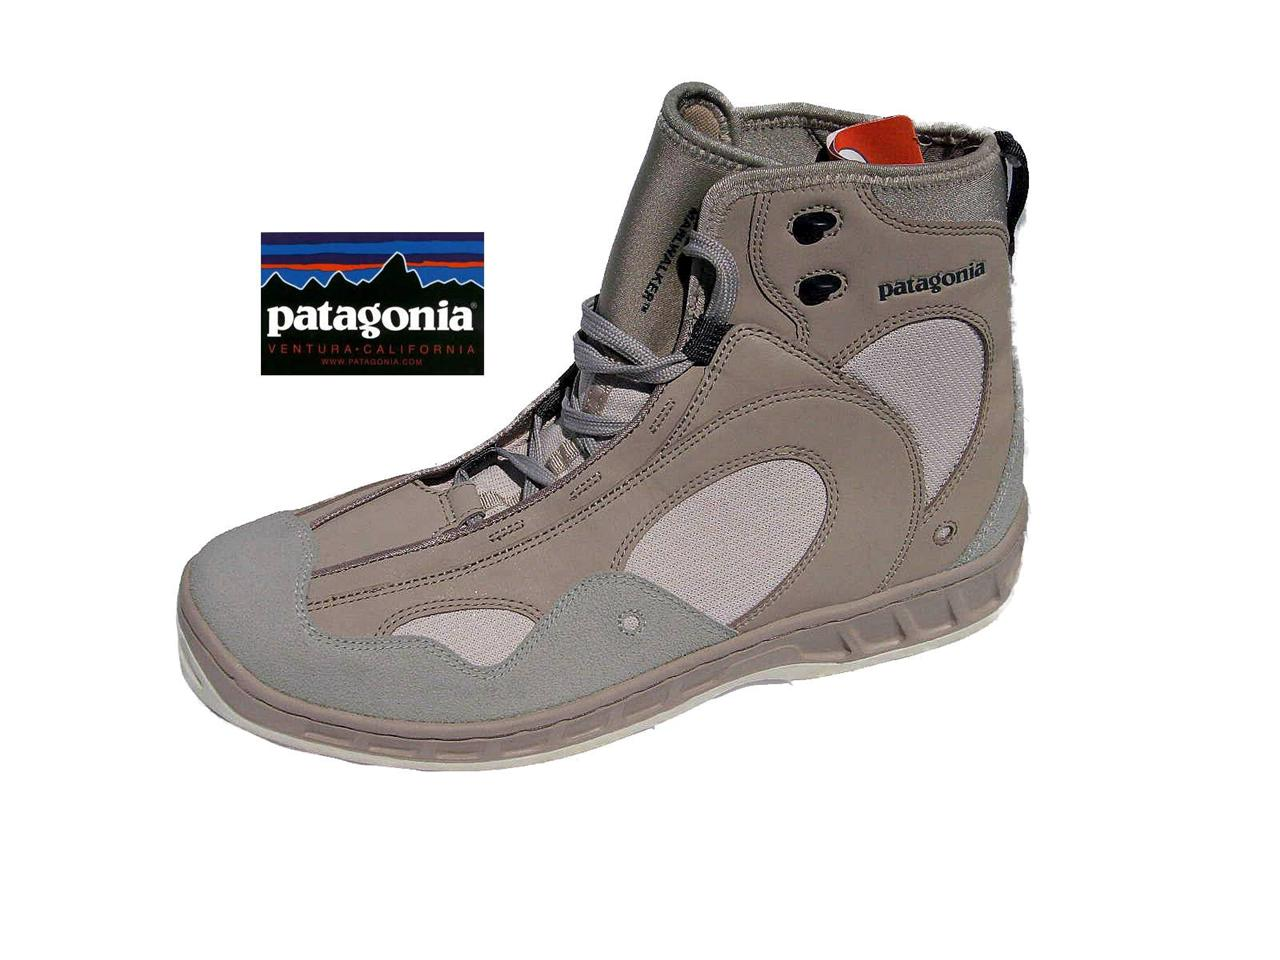 Wading Shoes For Flats Fishing